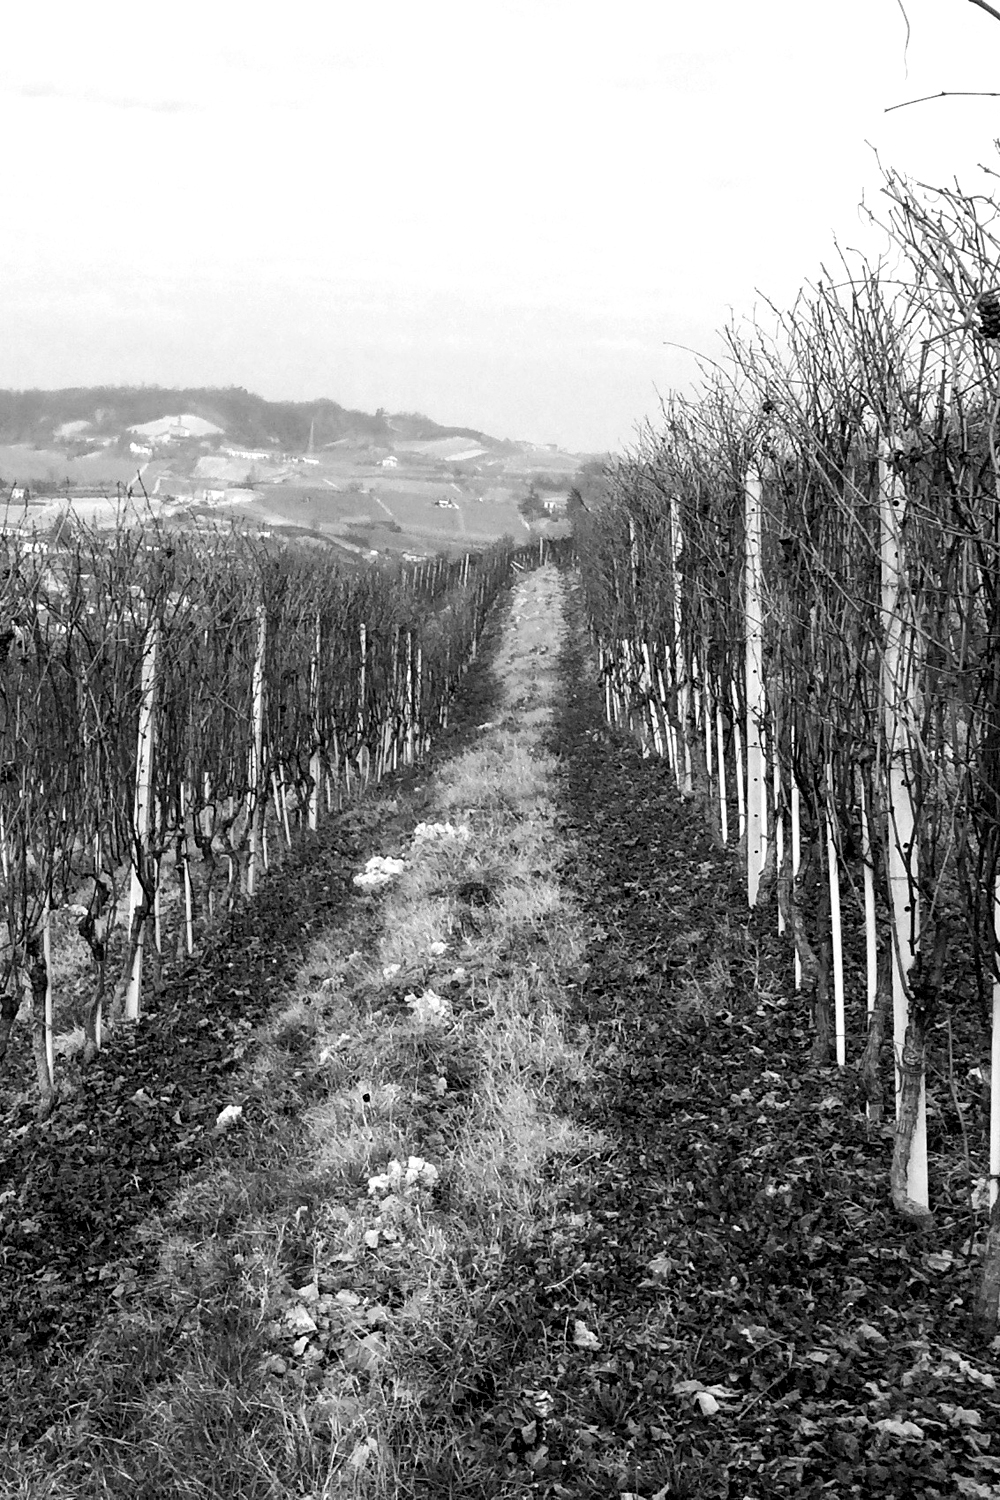 NEBBIOLO: 40% - DOC Nebbiolo D'AlbaDeep chalk, clay & sand mixSlight SlopeSouth-East facingNatural TurfPruning Style: Guyot30 years old7000 kg/ha➝ GPS Coordinates